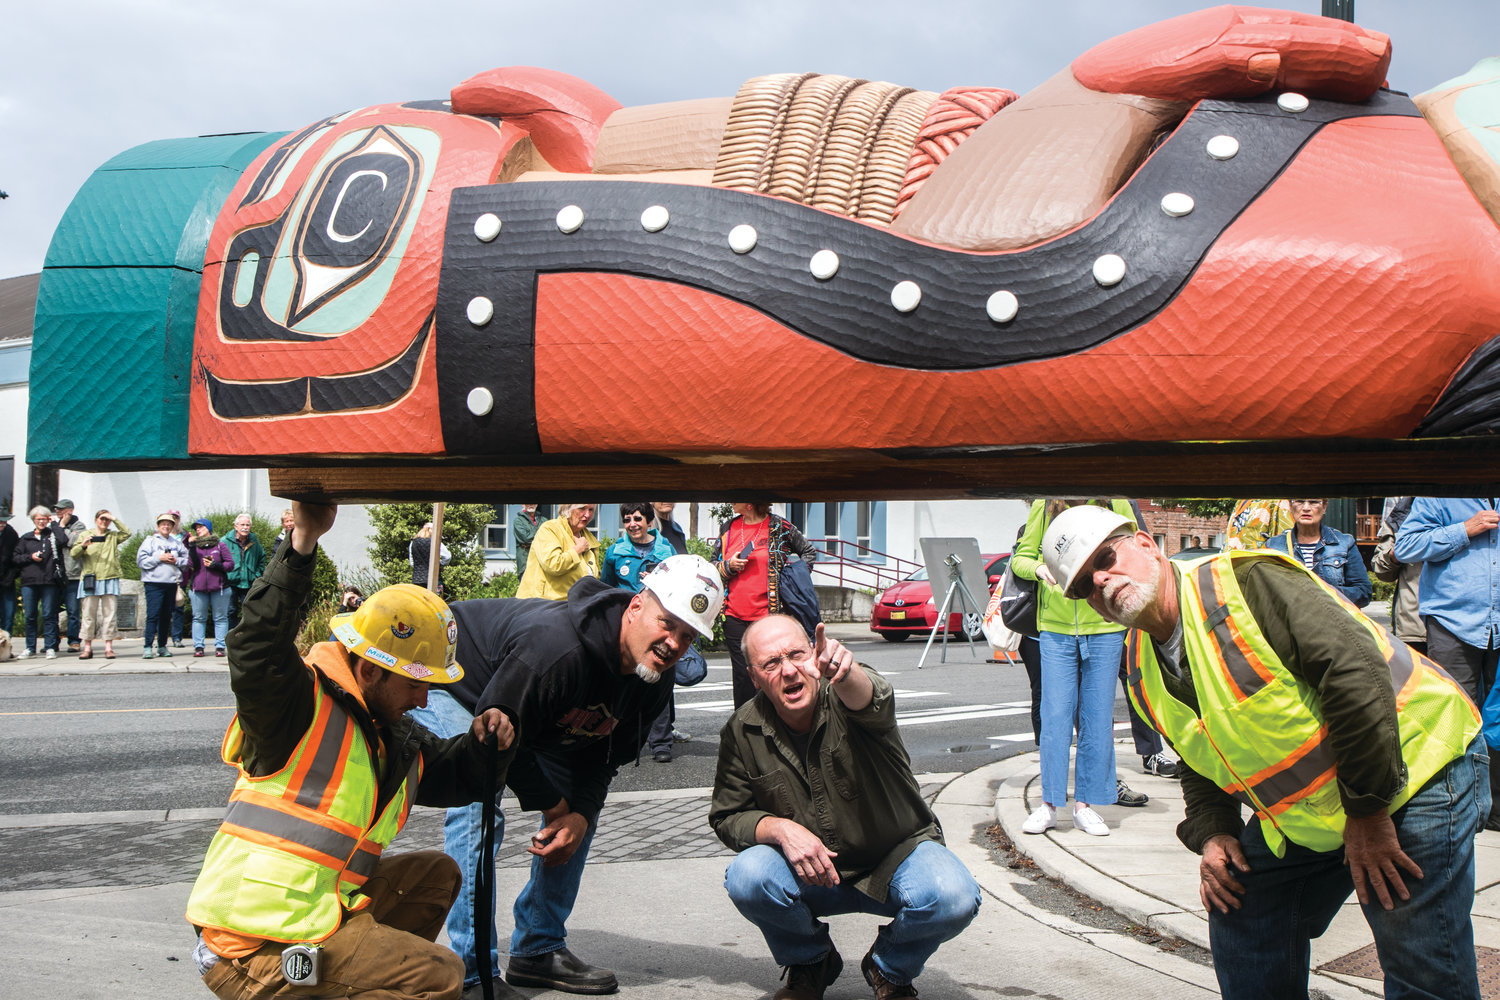 Bud Turner (center), manager of the Jamestown S'Klallam carving shed, works with Josh Cooper and Jerry Thompson of Jamestown Excavating to lift the 1,600 pound Totem Pole and mount it upright outside the Northwest Maritime Center. The pole was a gift from the Jamestown S'Klallam tribe and depicts the Supernatural Carpenter, the Spirit of the Western Red Cedar and Cicmehan on Sentinel Rock.